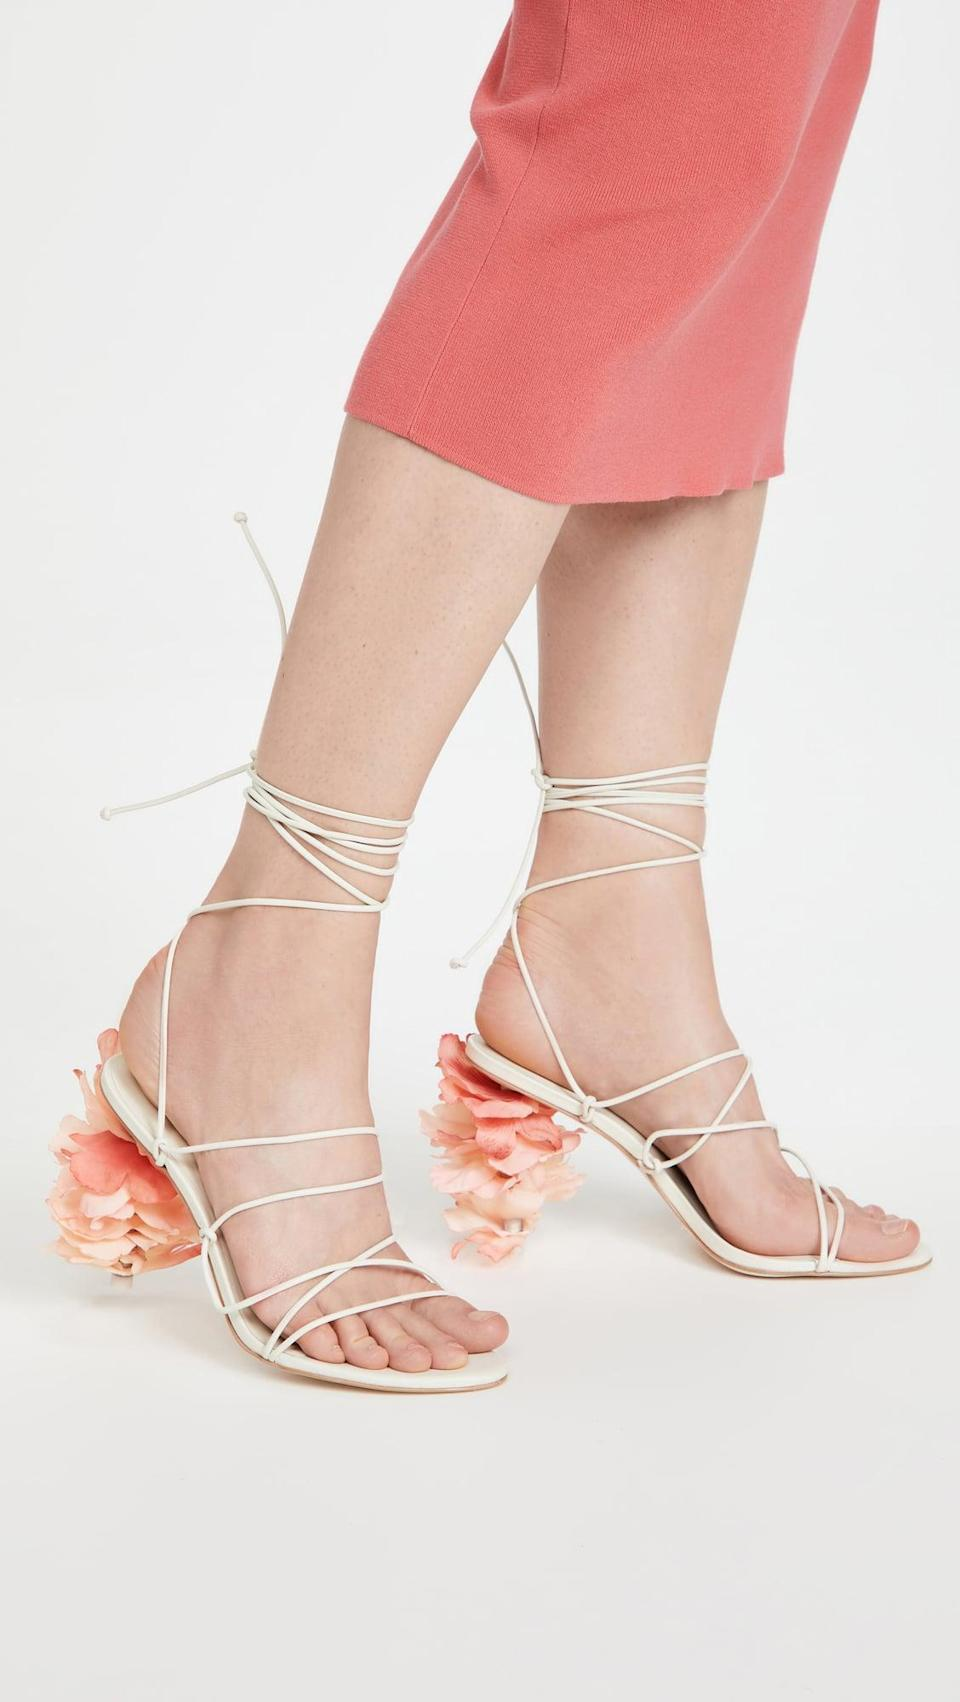 <p>These <span>Cult Gaia Effie Sandals</span> ($498) are so cool. We love the thin white straps that go up the leg, and the flower petal heels are next level pretty.</p>